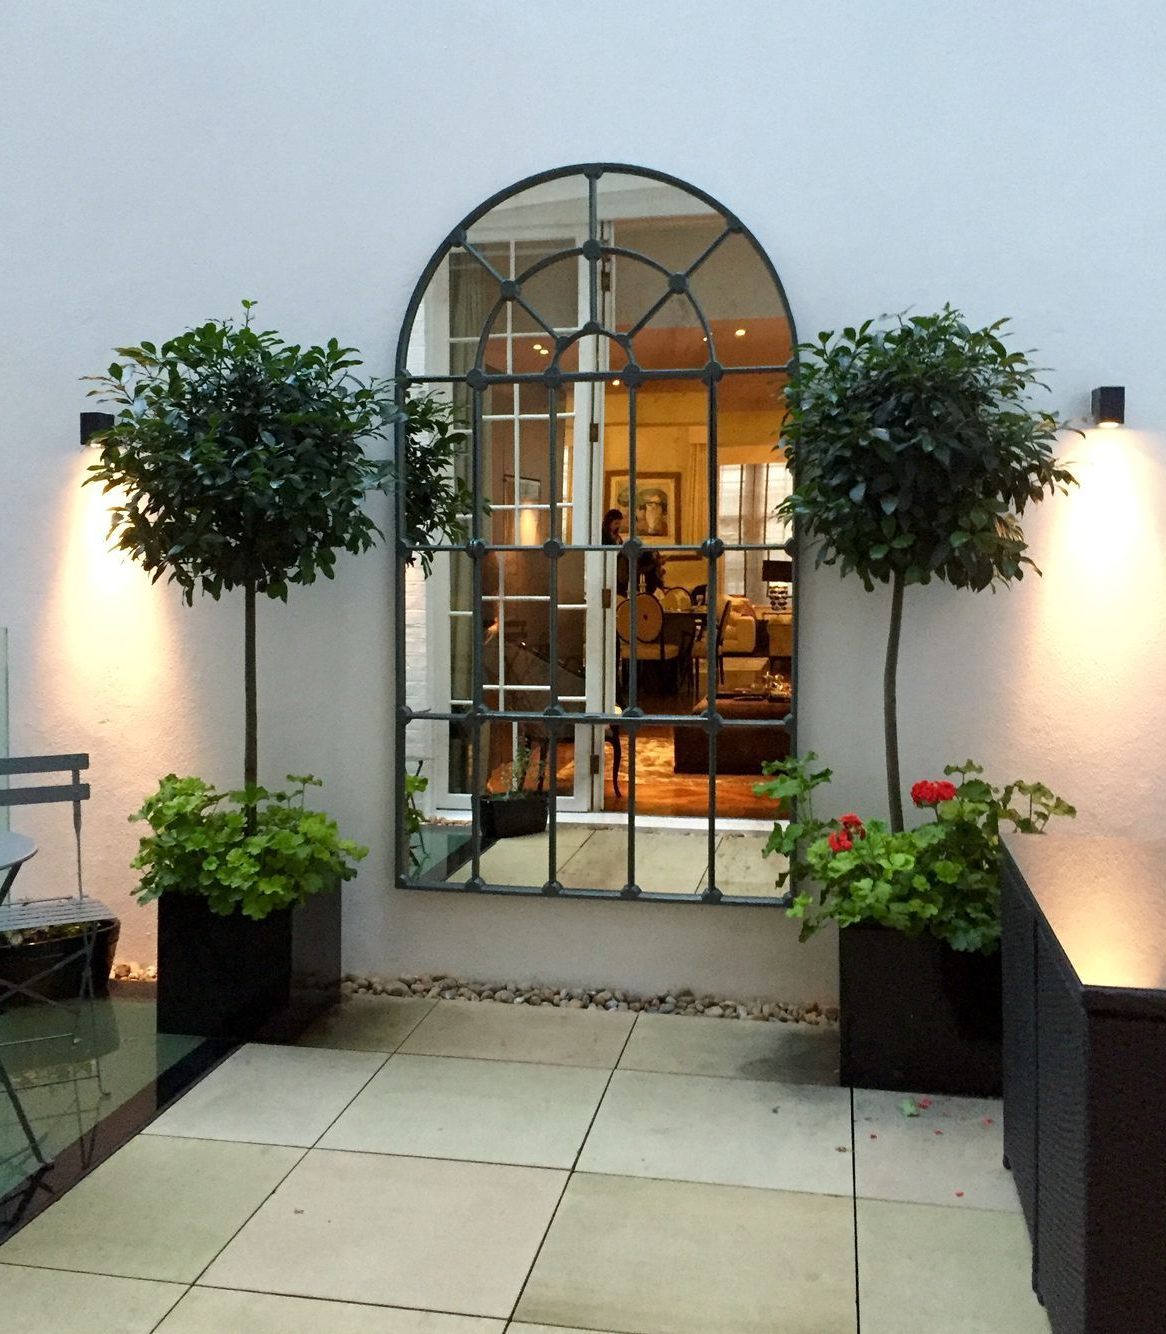 Well Known Outdoor Garden Wall Mirrors Pertaining To 44 Inspiring Outdoor Garden Wall Mirrors Ideas (View 16 of 20)